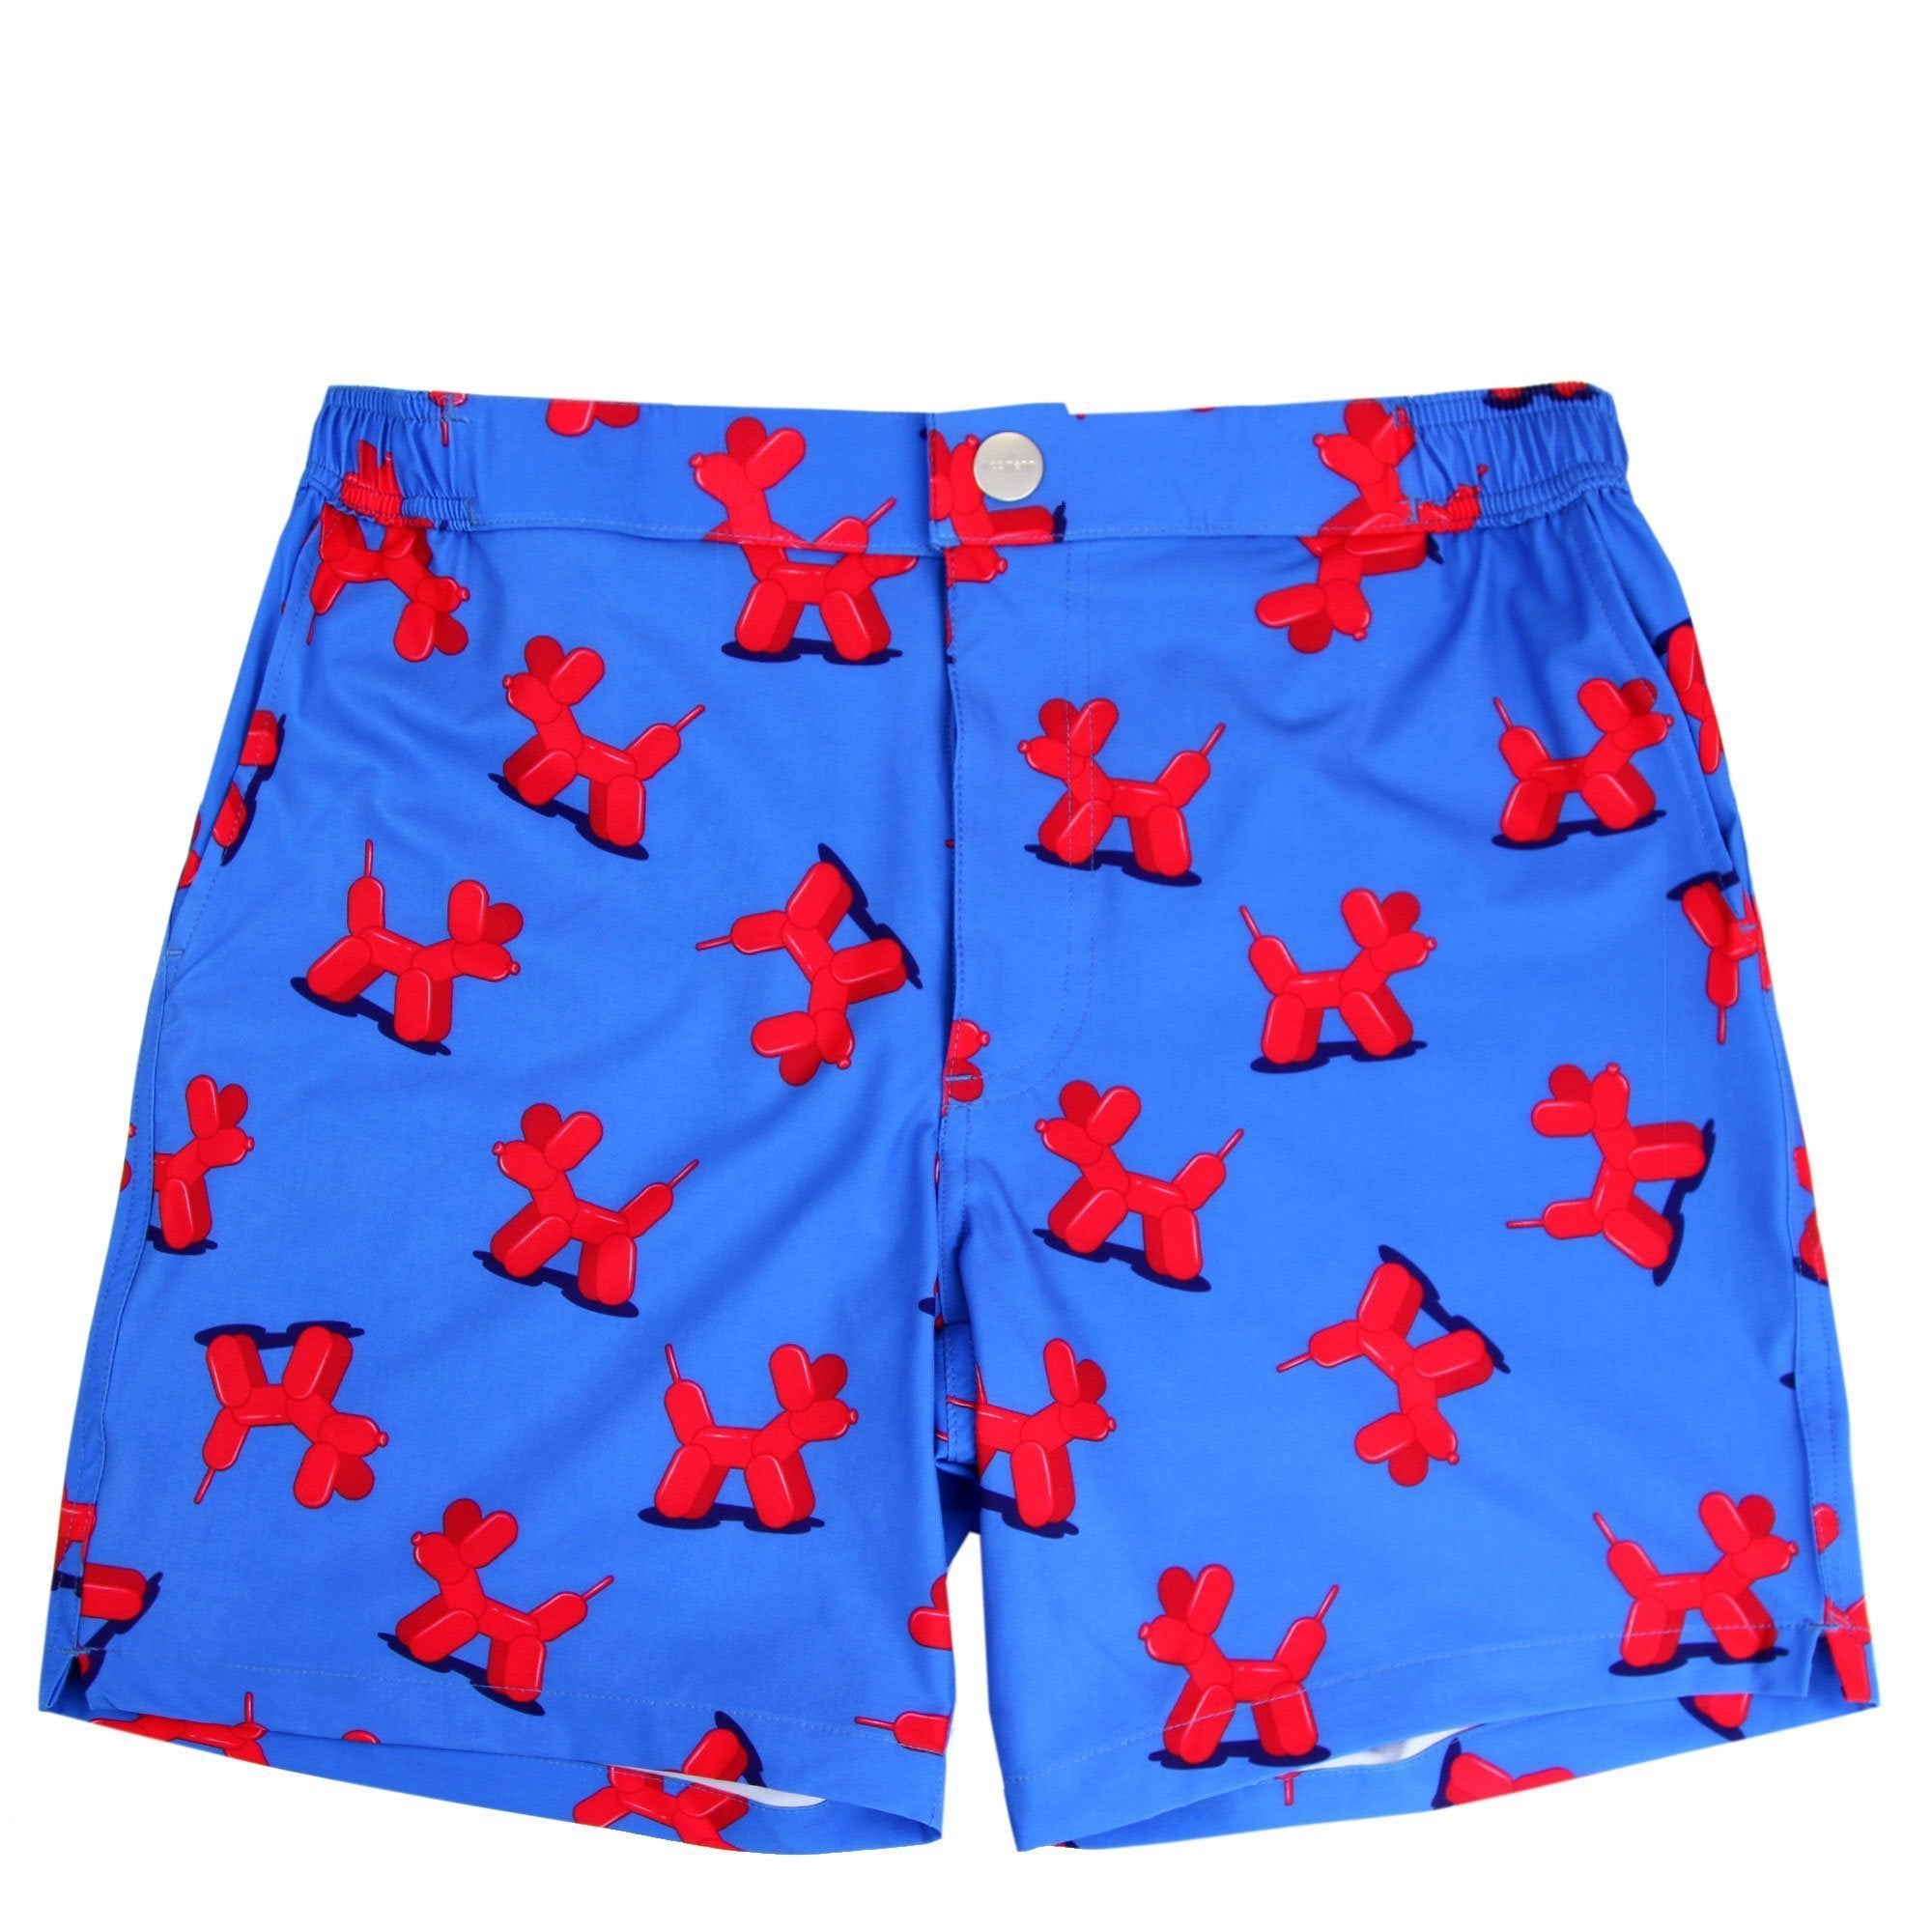 Balloon-Dog-Swim-Shorts.jpg